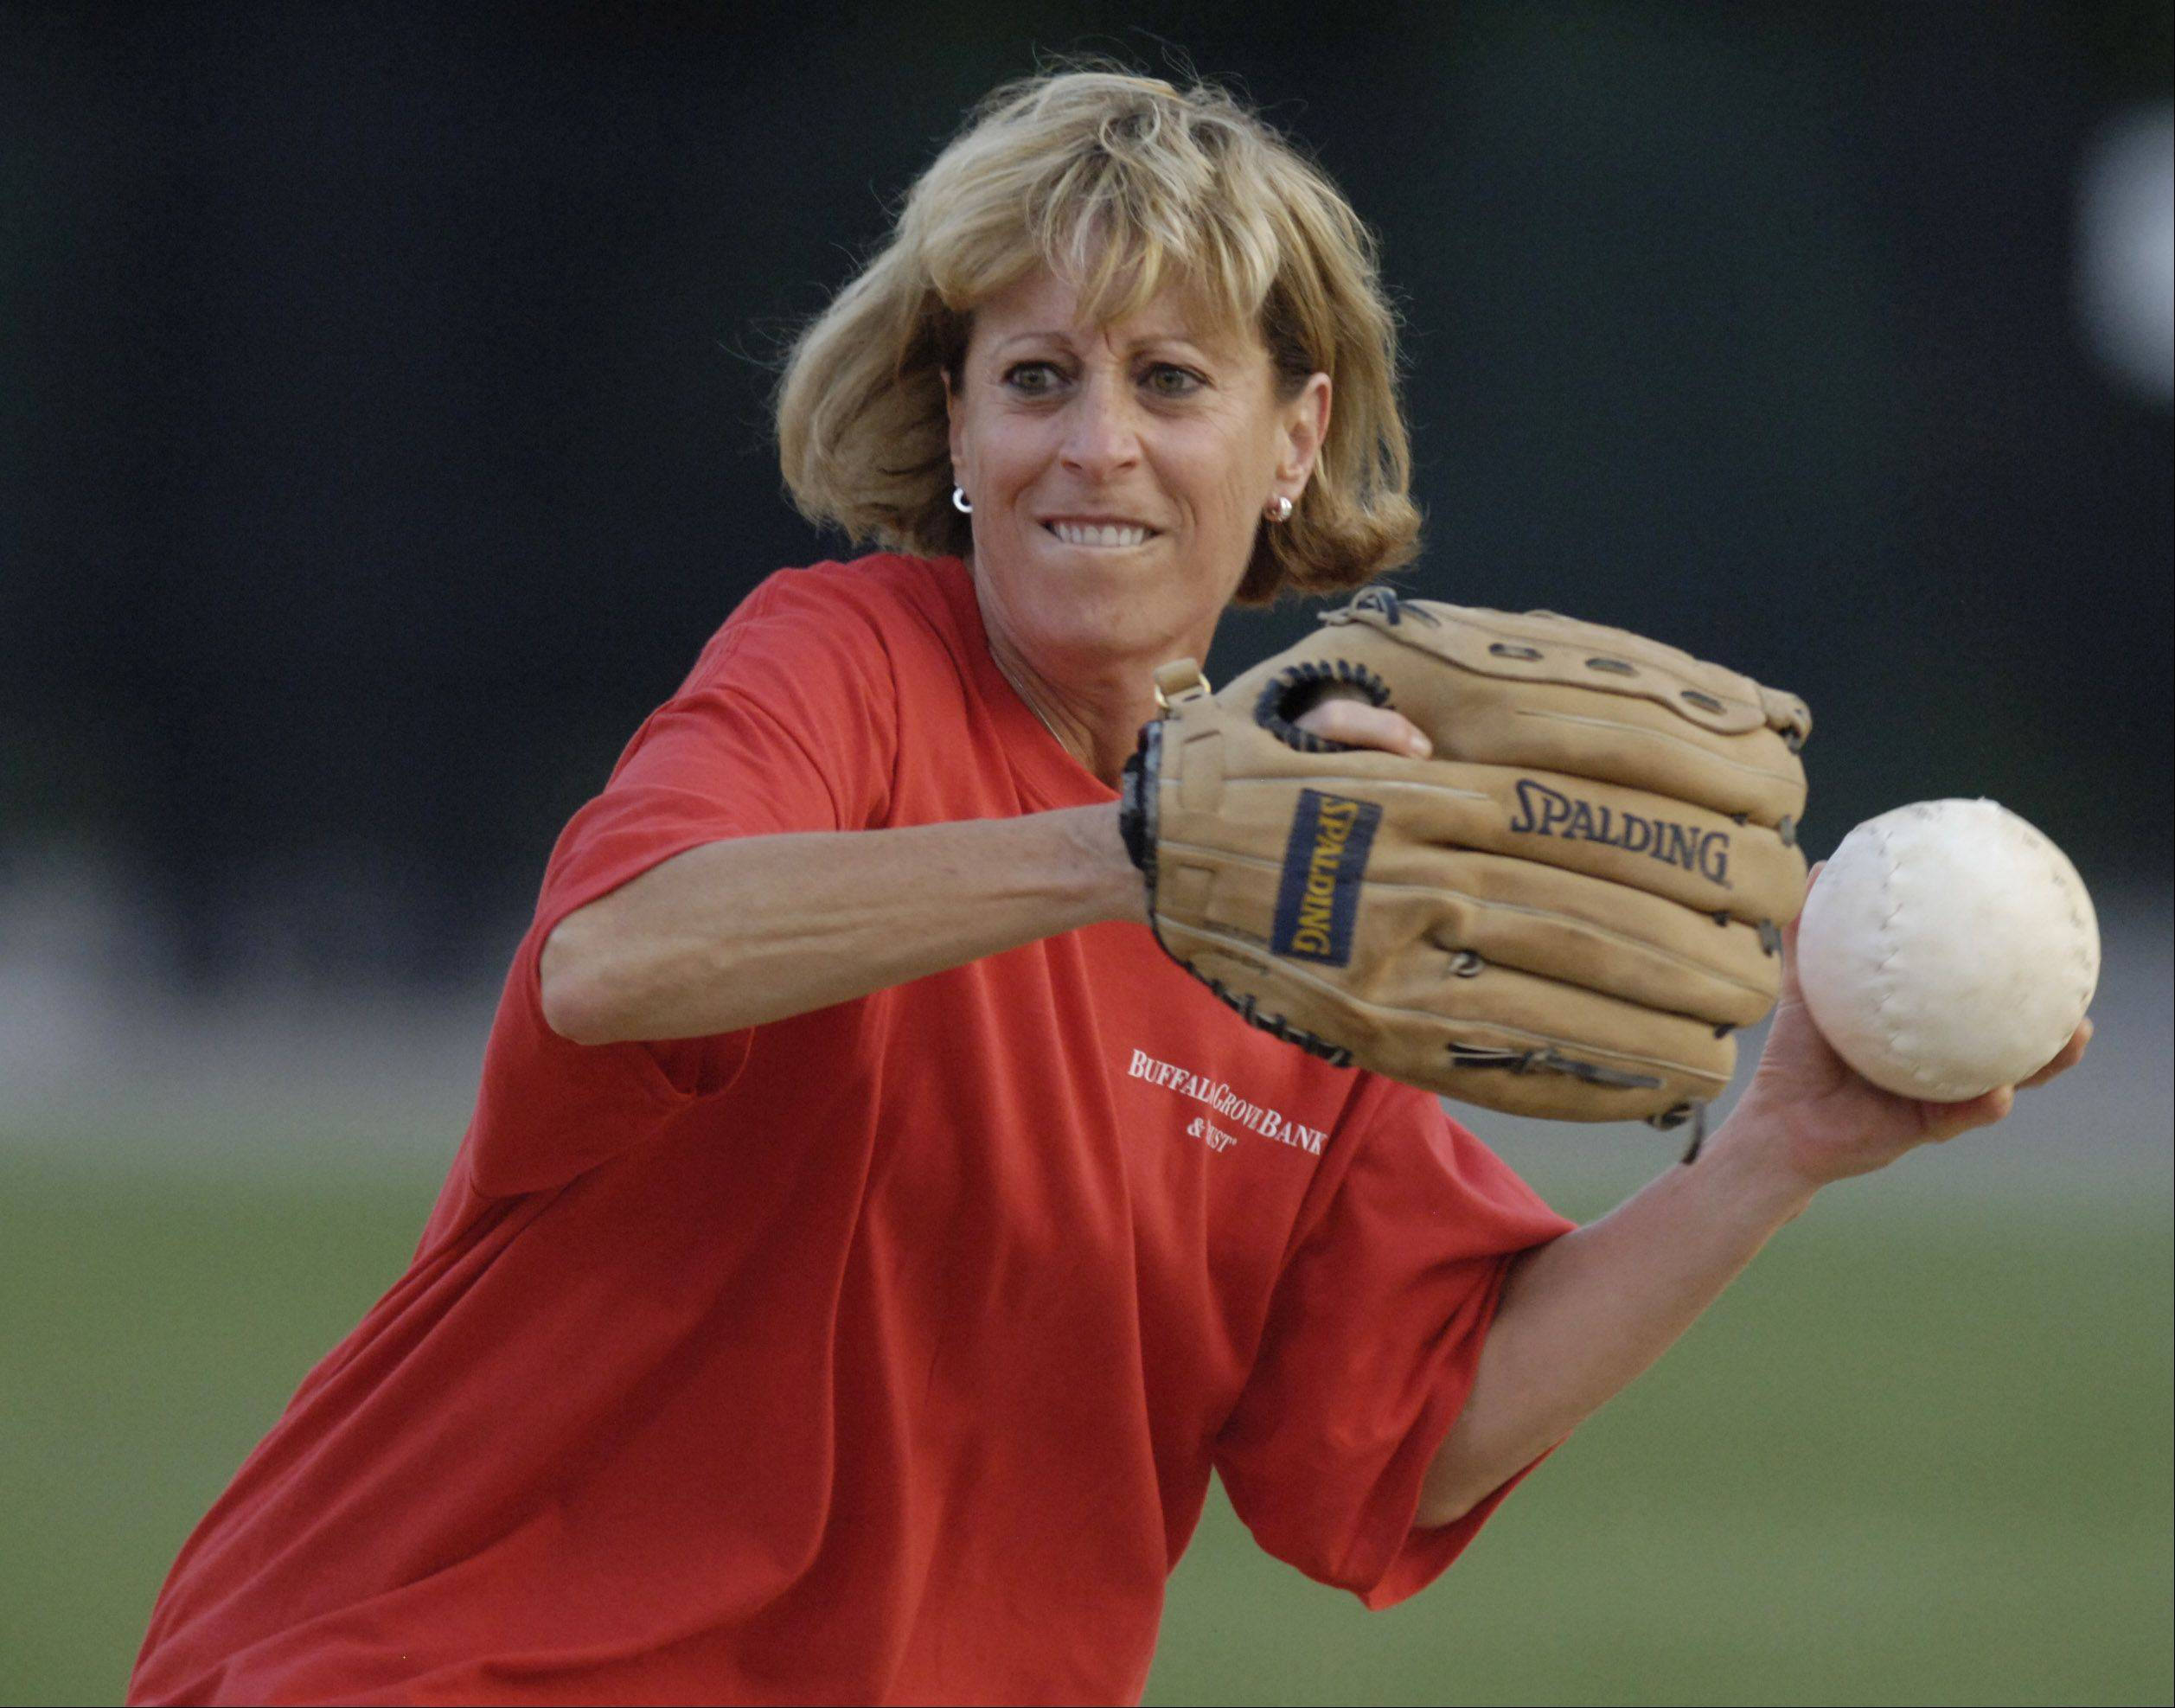 Robyn Kove of Midtown Athletic Club makes a throw from second base.